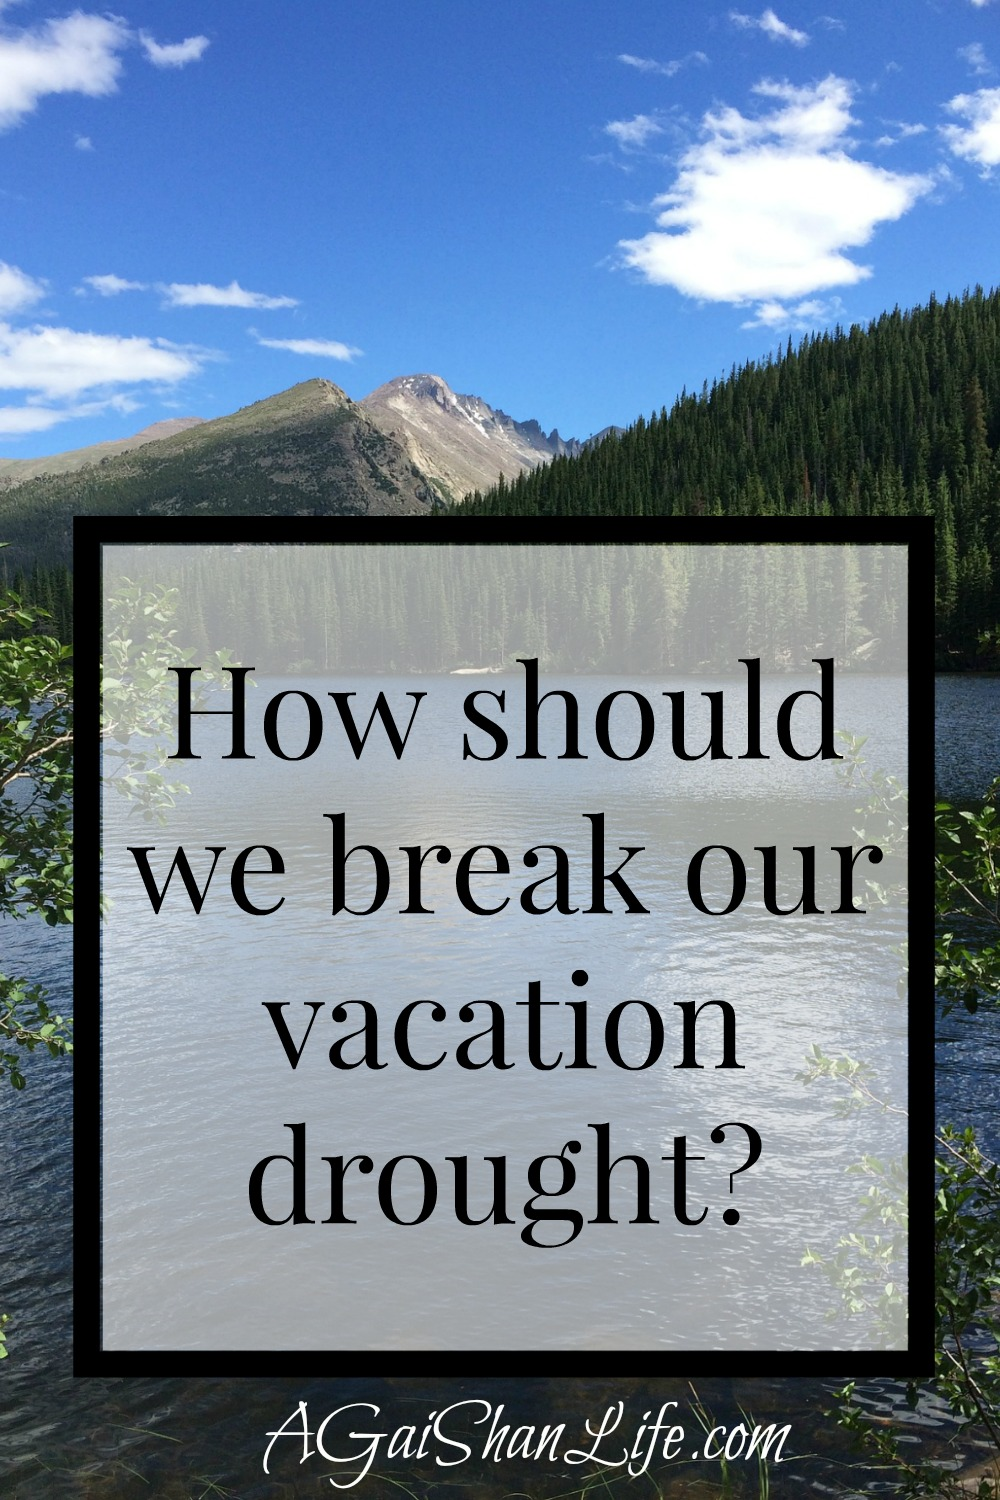 It's been 6 years since our last vacation: how should we break this drought?